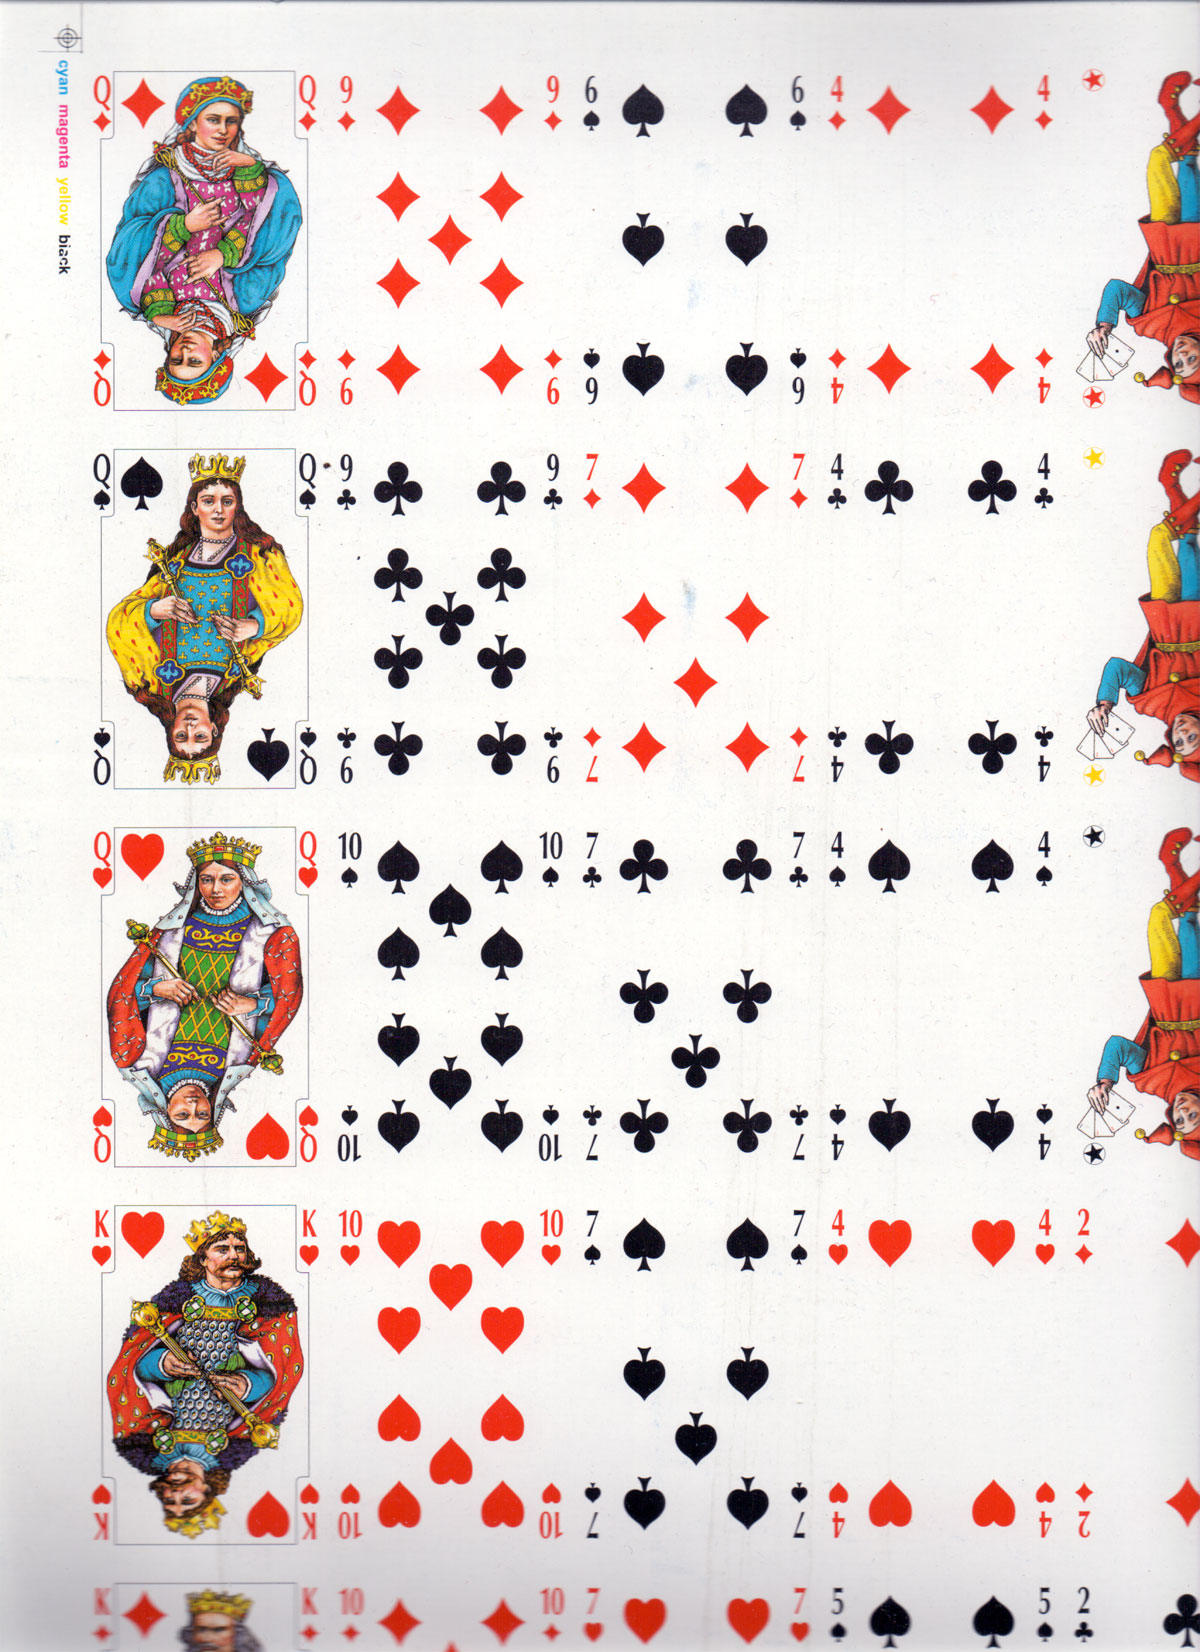 'Królewskie' playing cards with Slavic style courts, printed by KZWP-Trefl, 2002